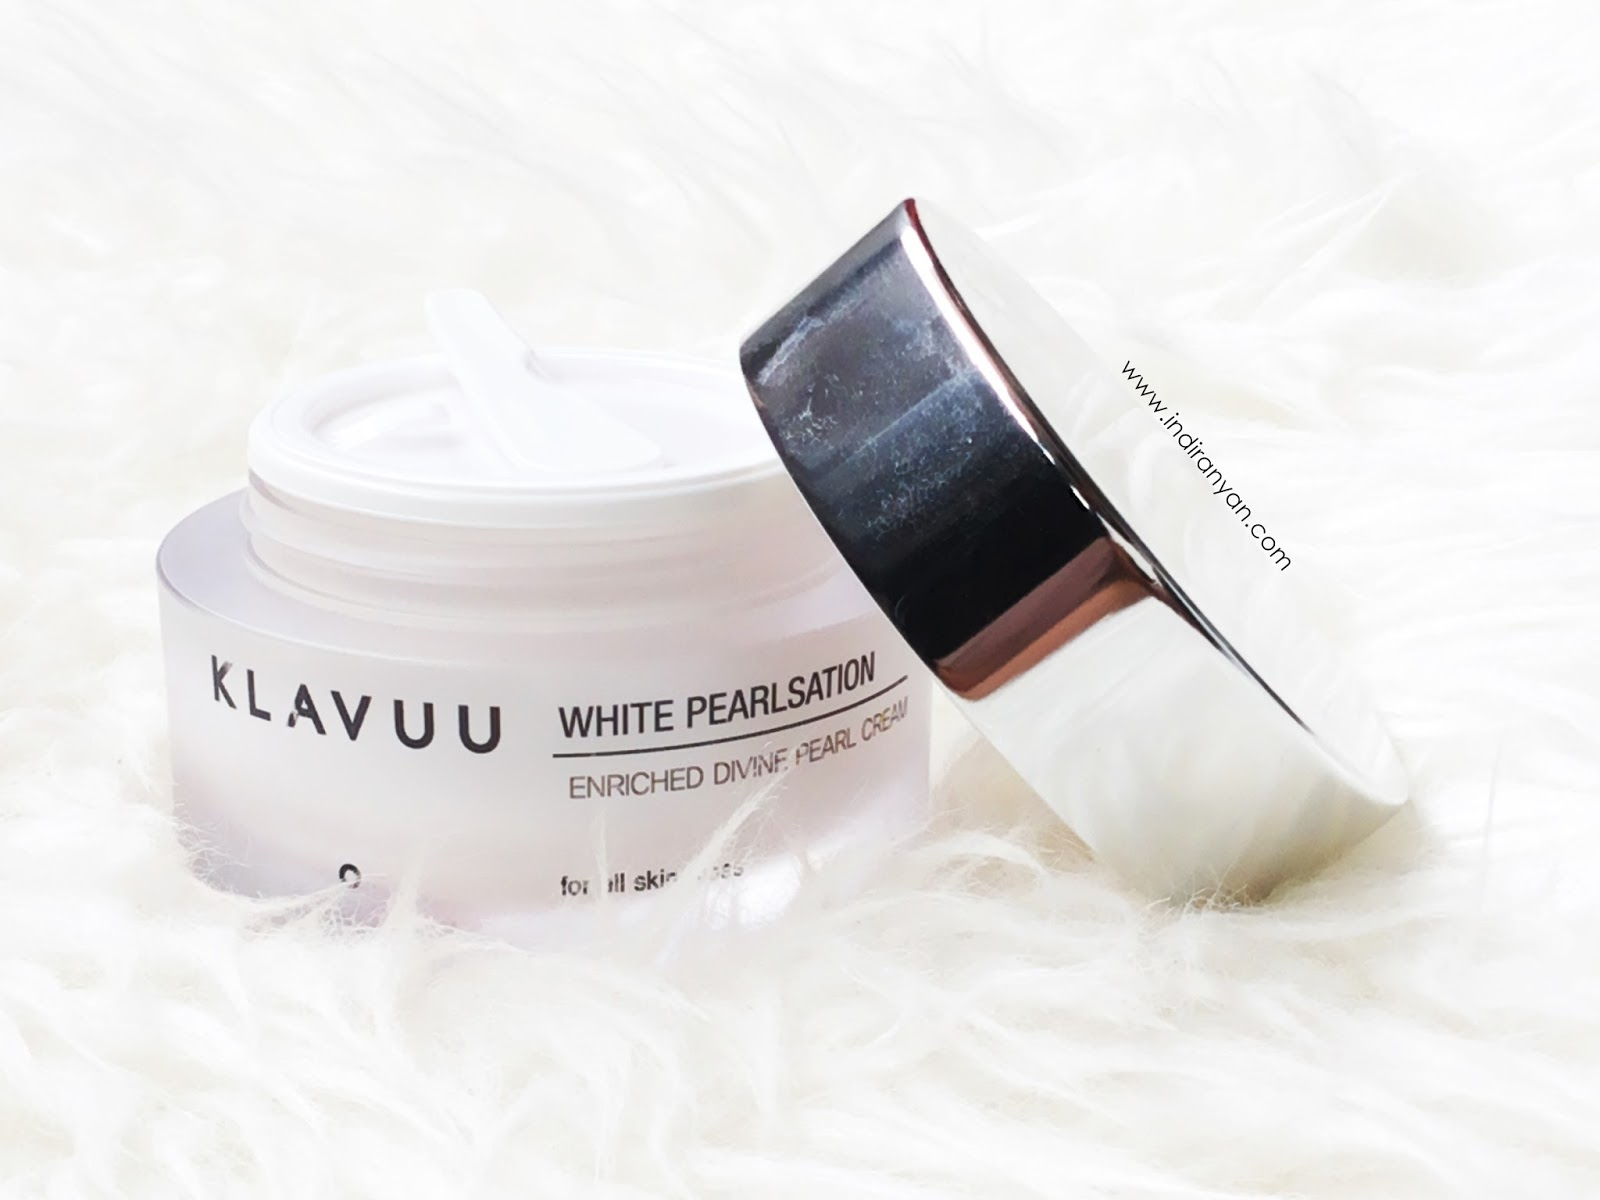 klavuu-white-pearlsation-enriched-divine-pearl-cream-review